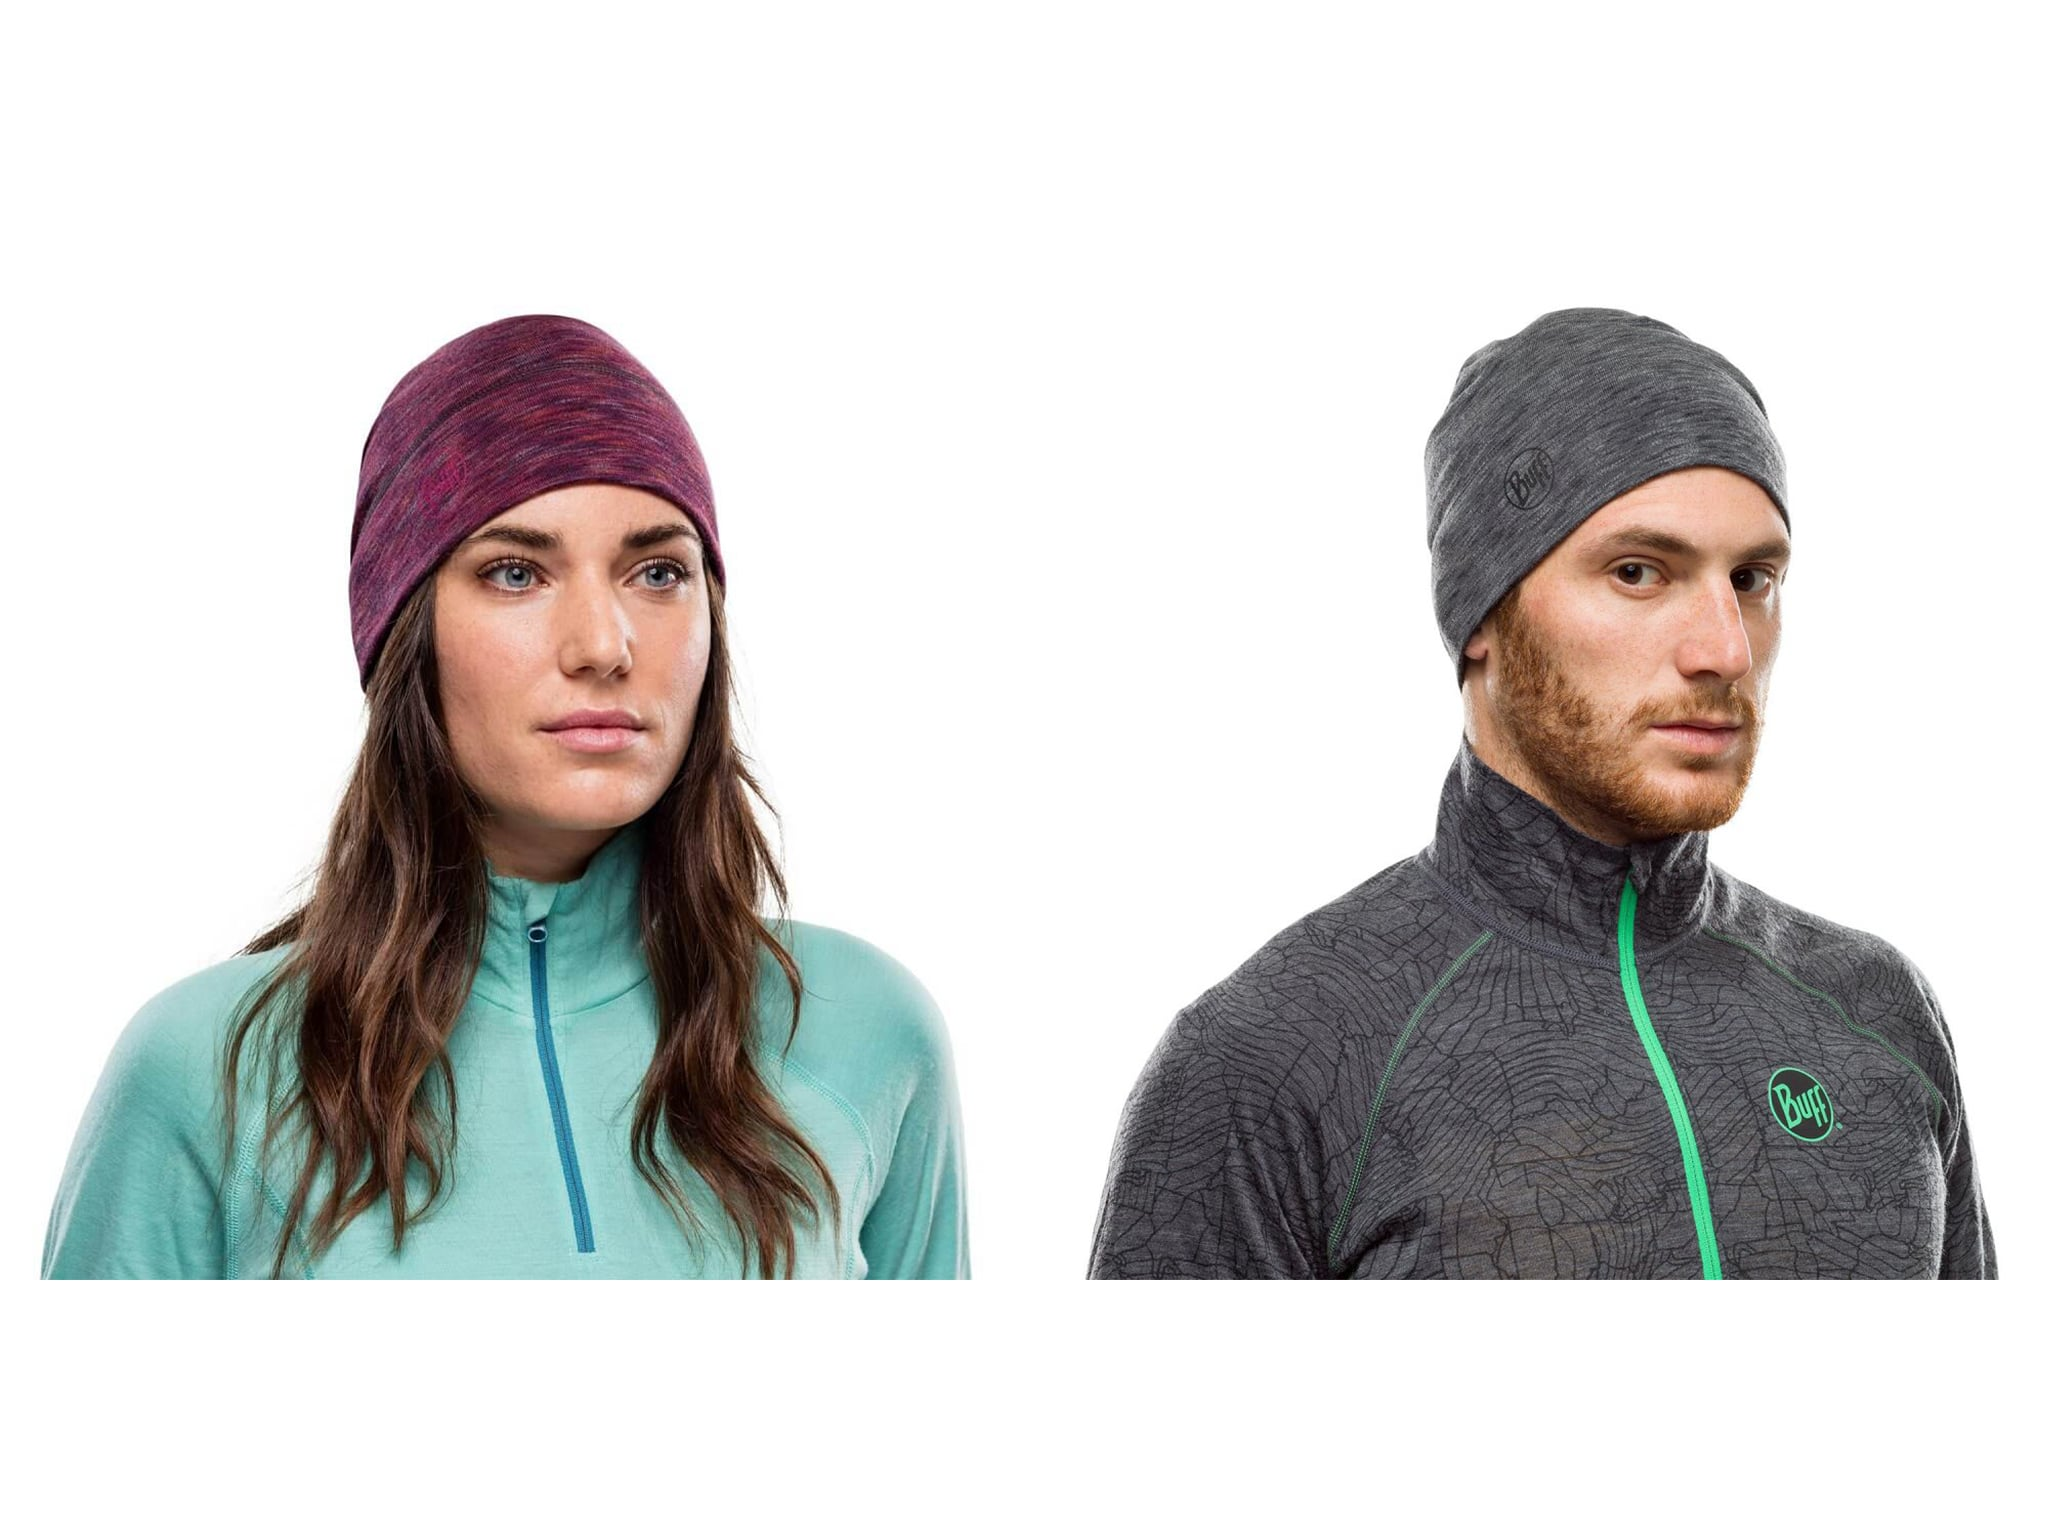 A montage of a man and a woman wearing a BUFF® Midweight Merino Wool Hat. They are both wearing winter running gear. Source: Technicalheadwear.com.au